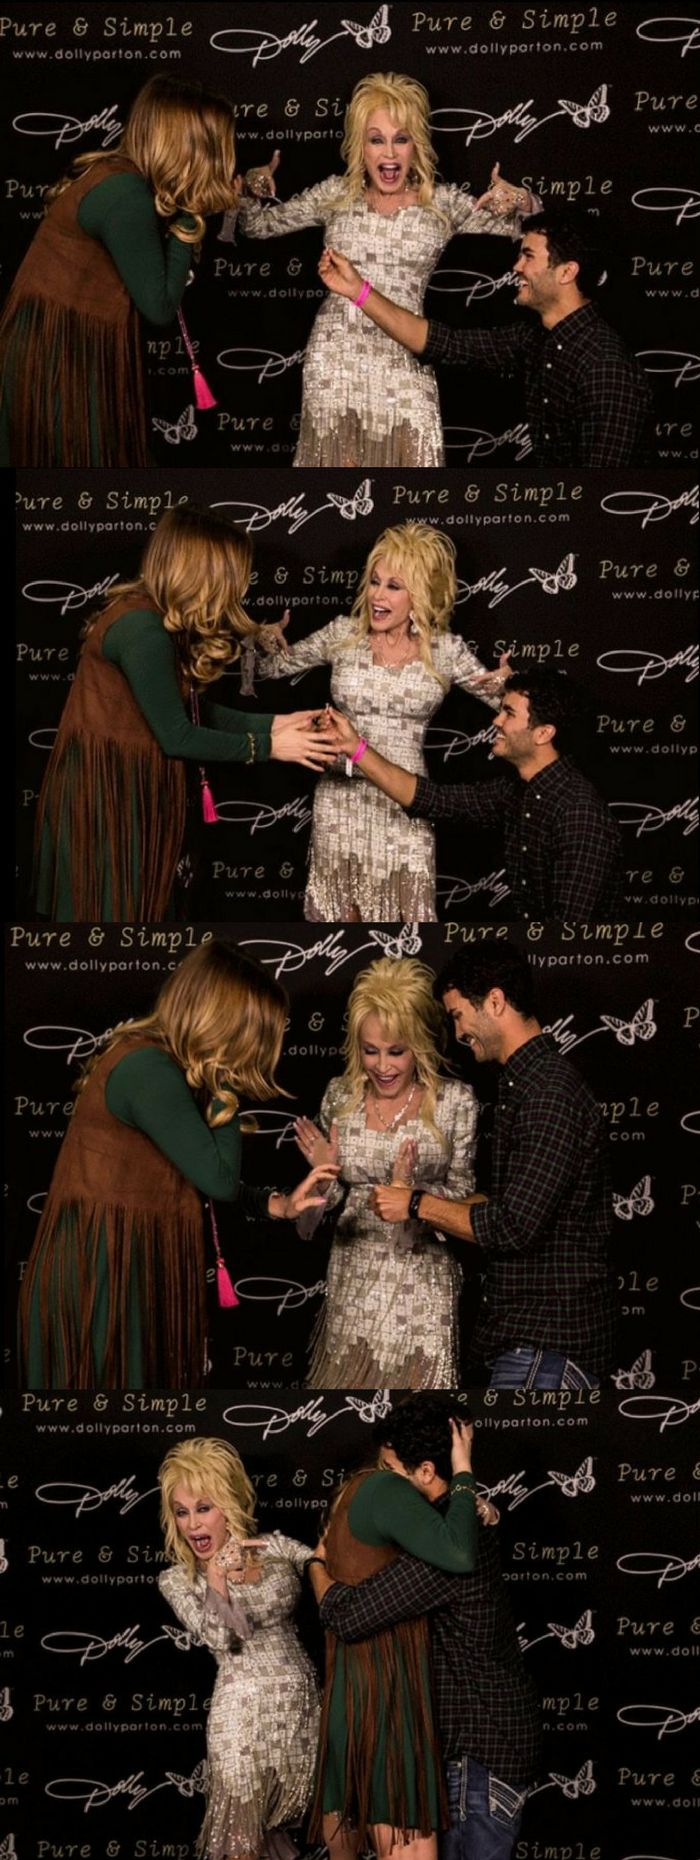 This man surprised his girlfriend AND Dolly Parton with a spontaneous marriage proposal!